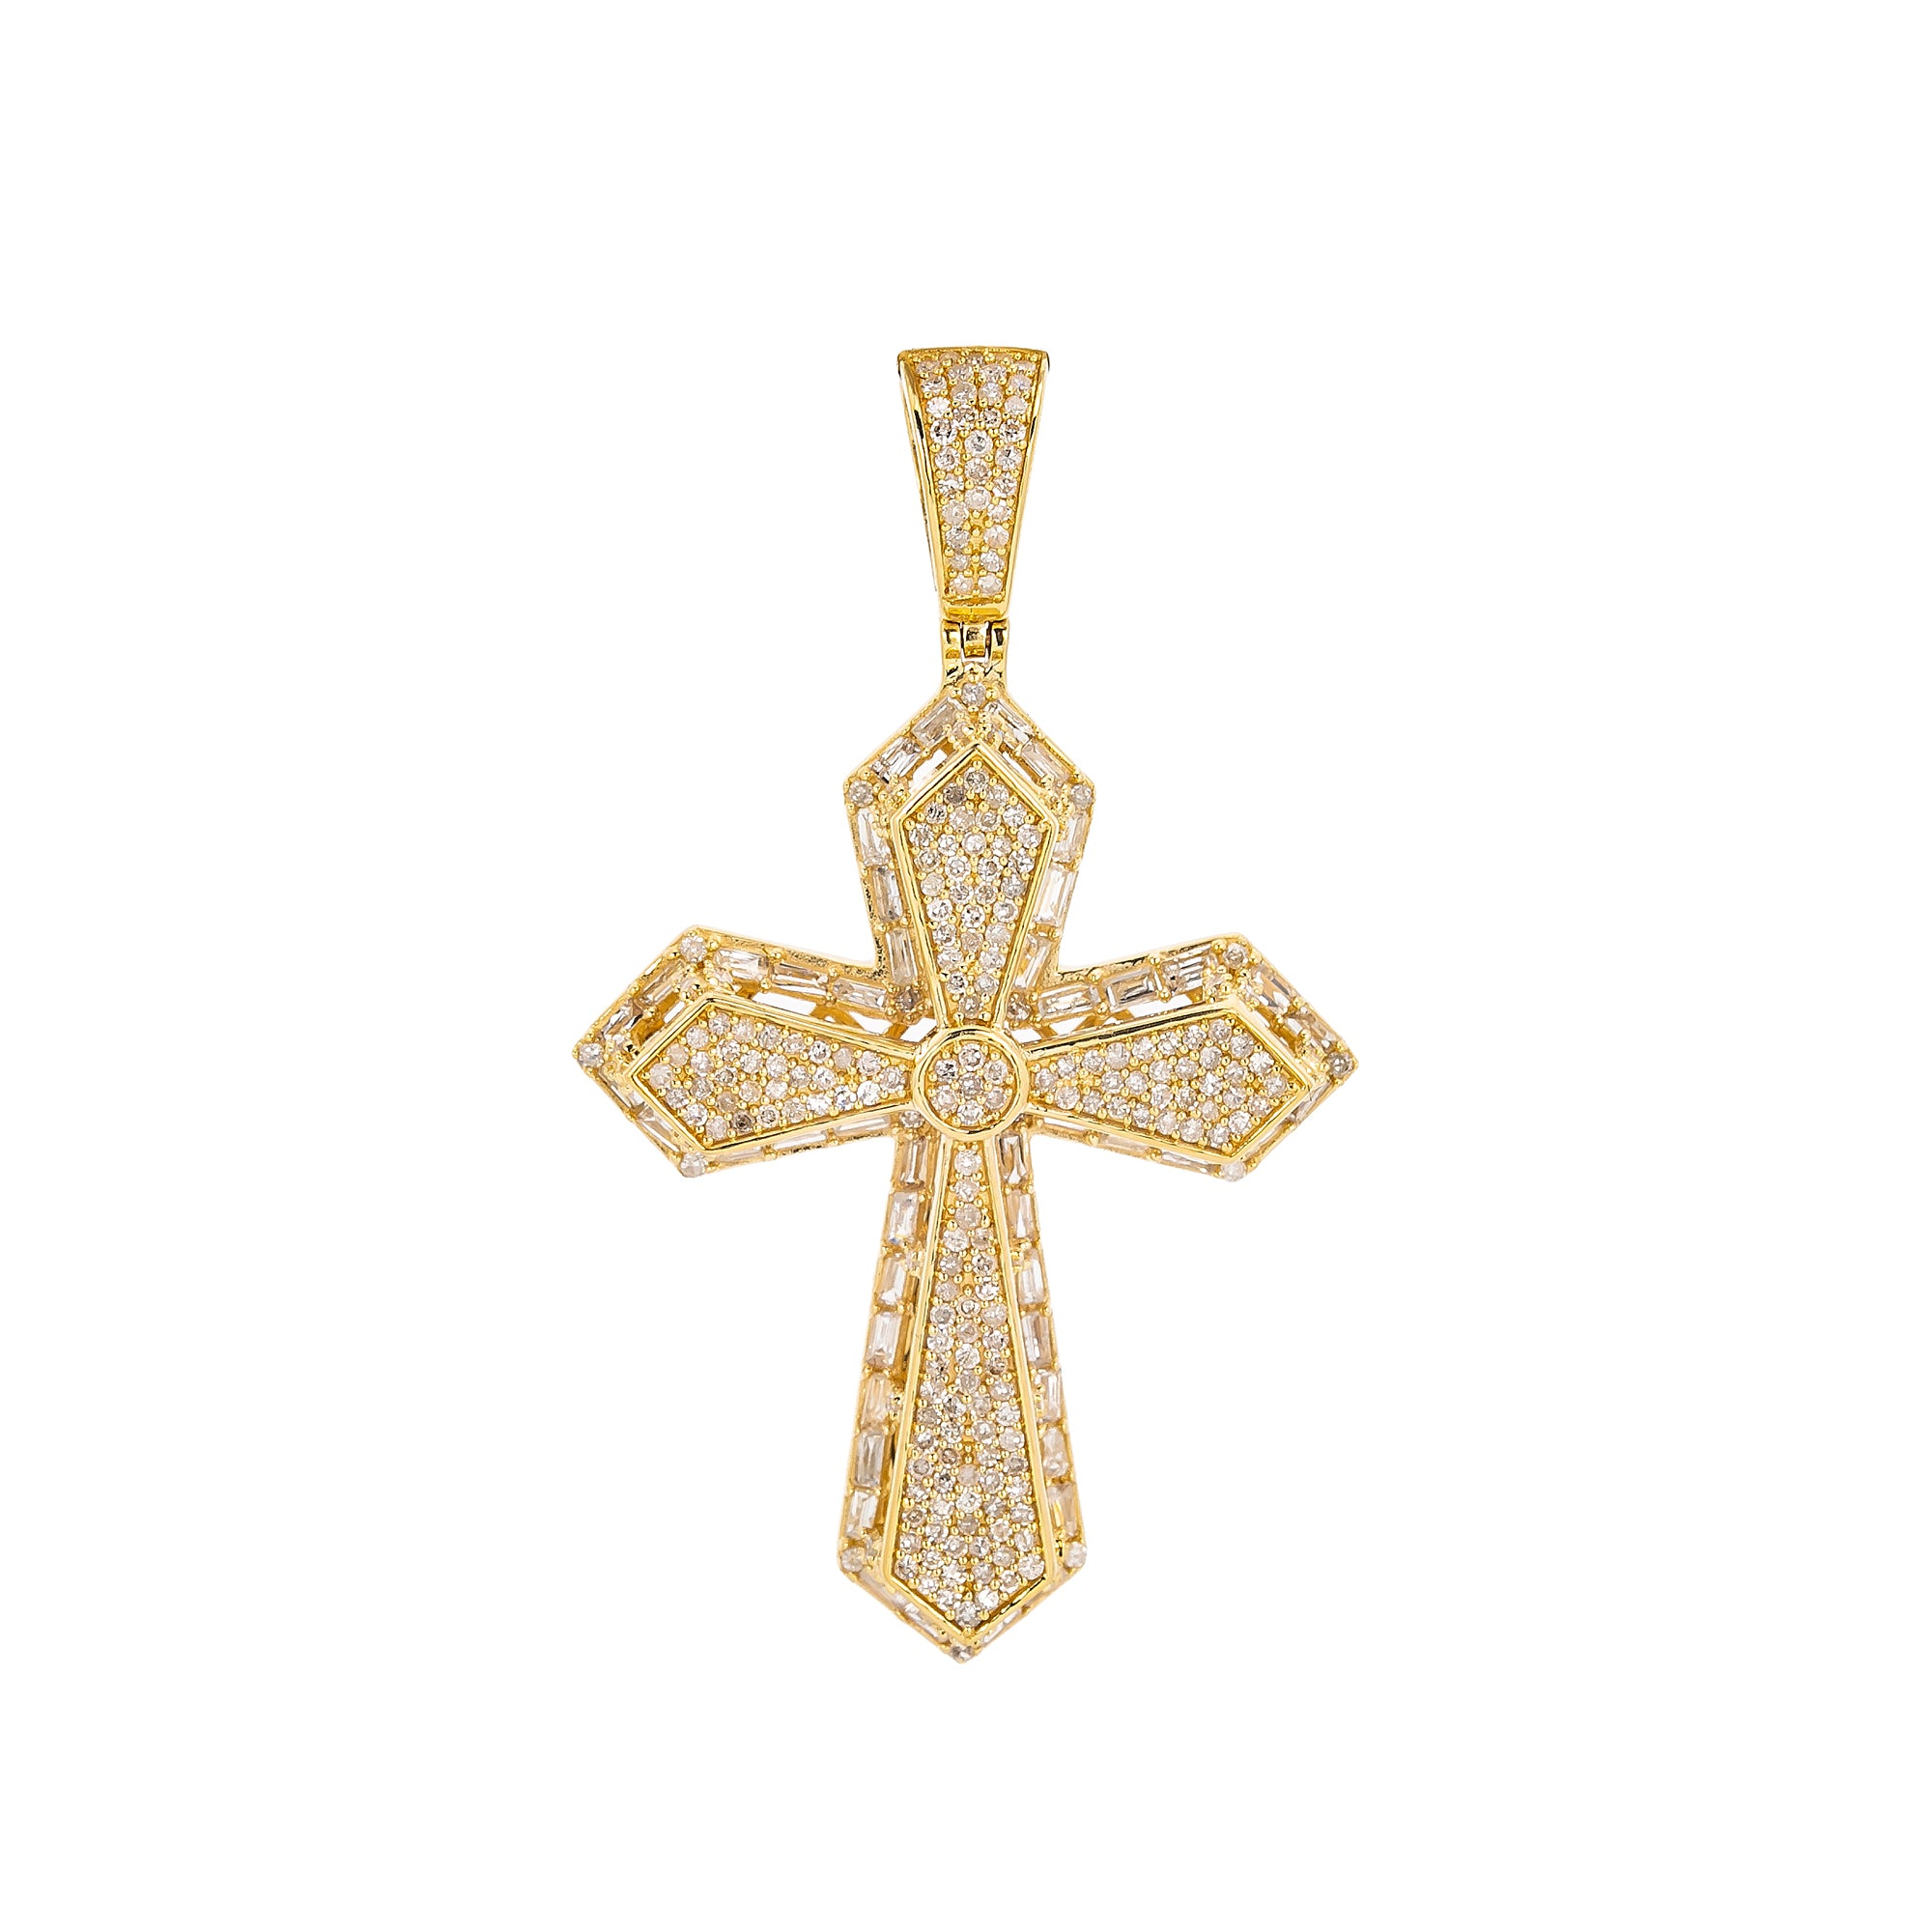 Unisex 14K Yellow Gold Cross Pendant with 1.28 CT Diamonds